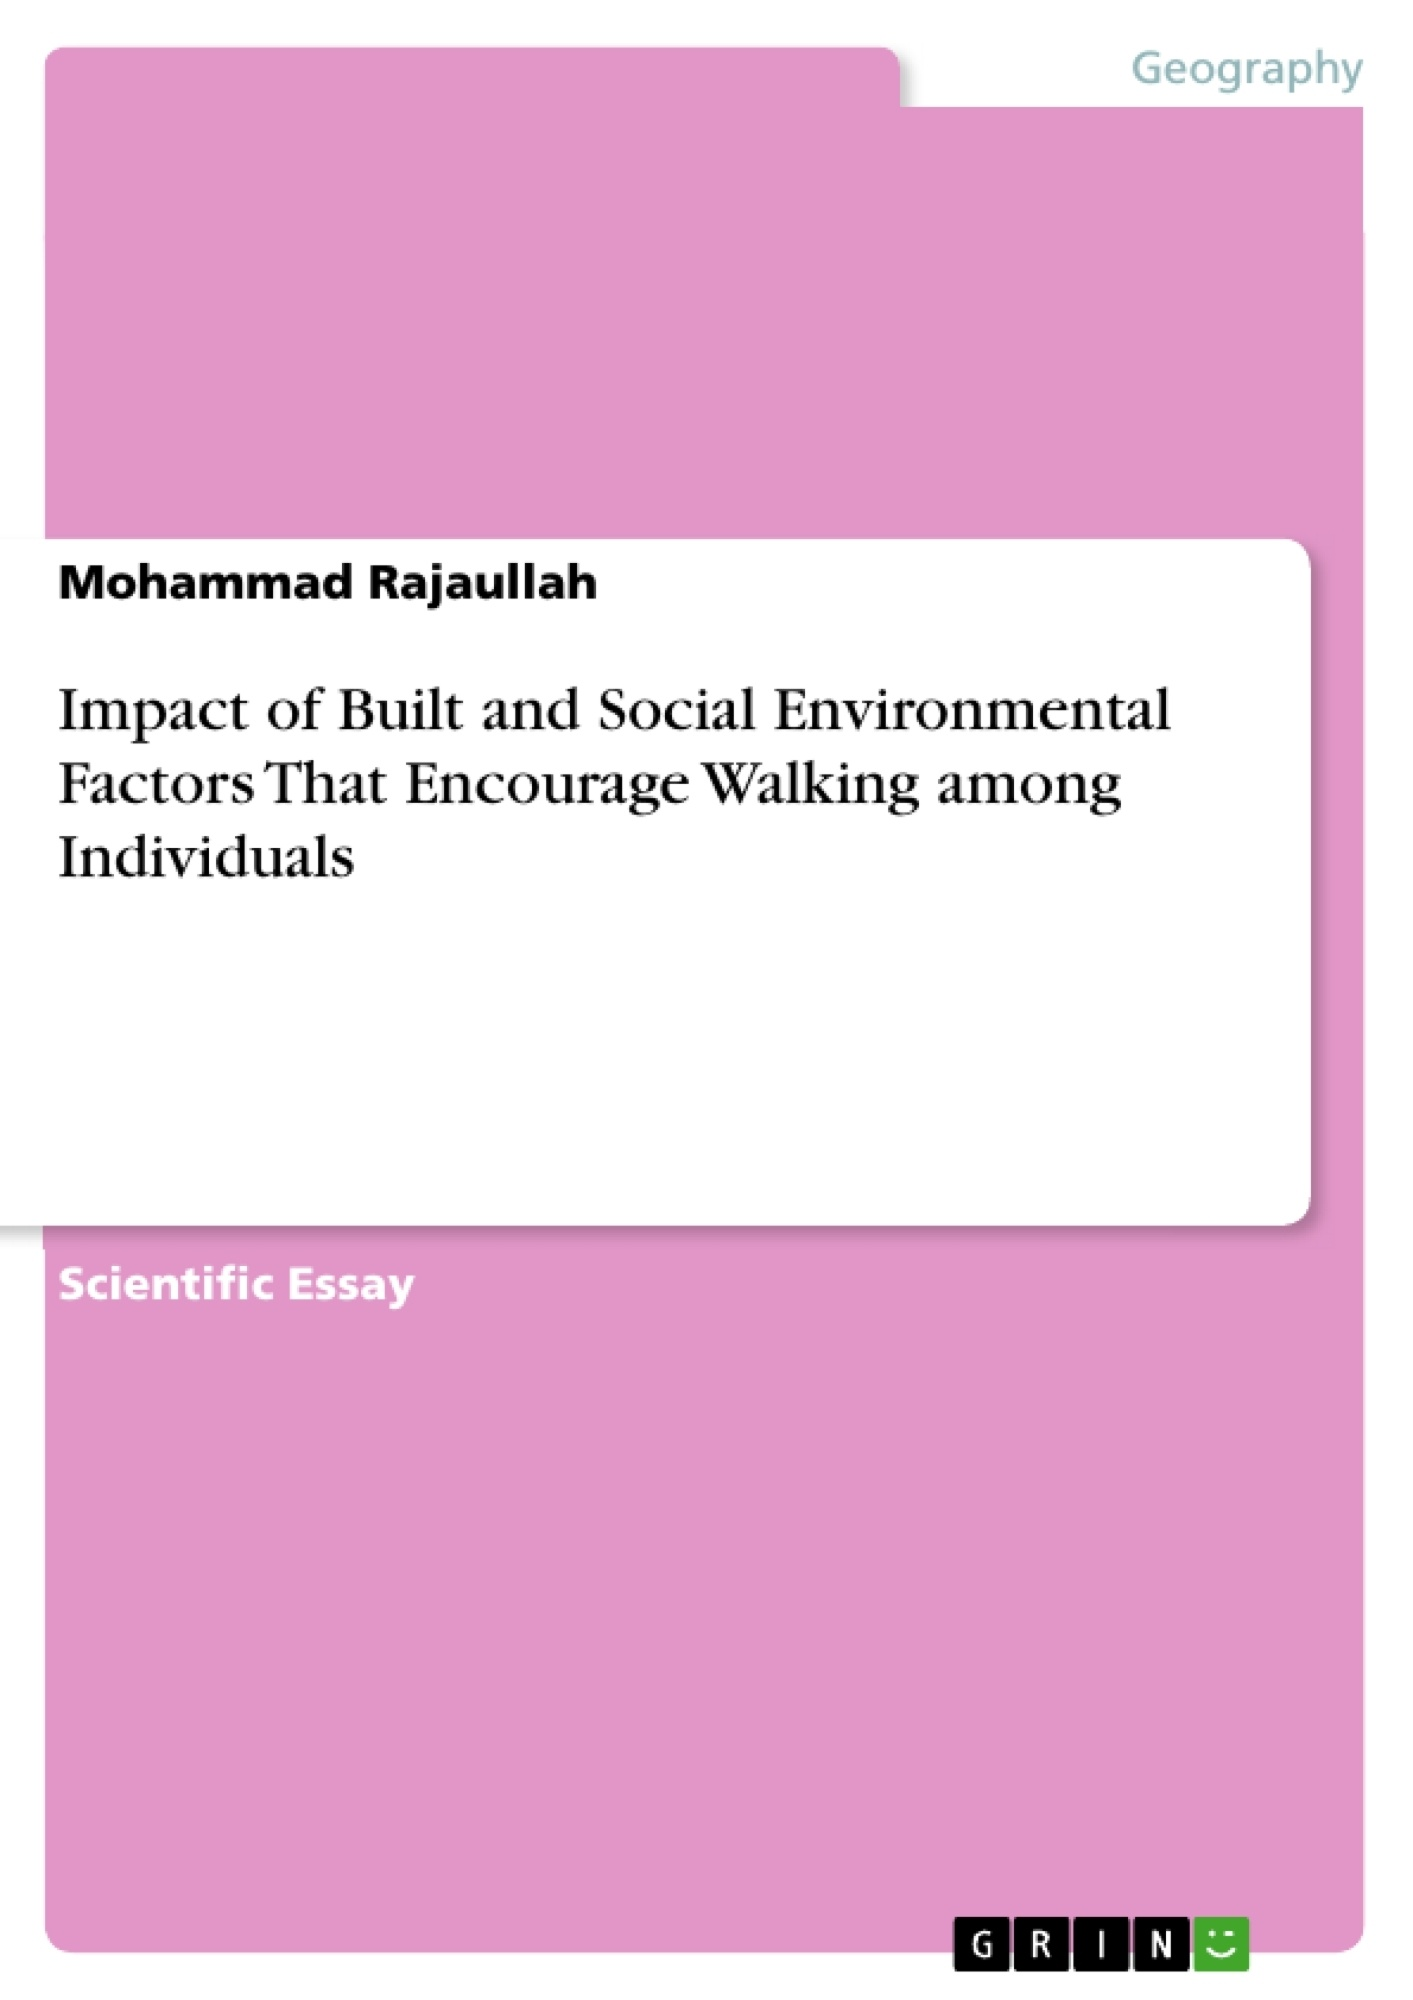 Title: Impact of Built and Social Environmental Factors That Encourage Walking among Individuals